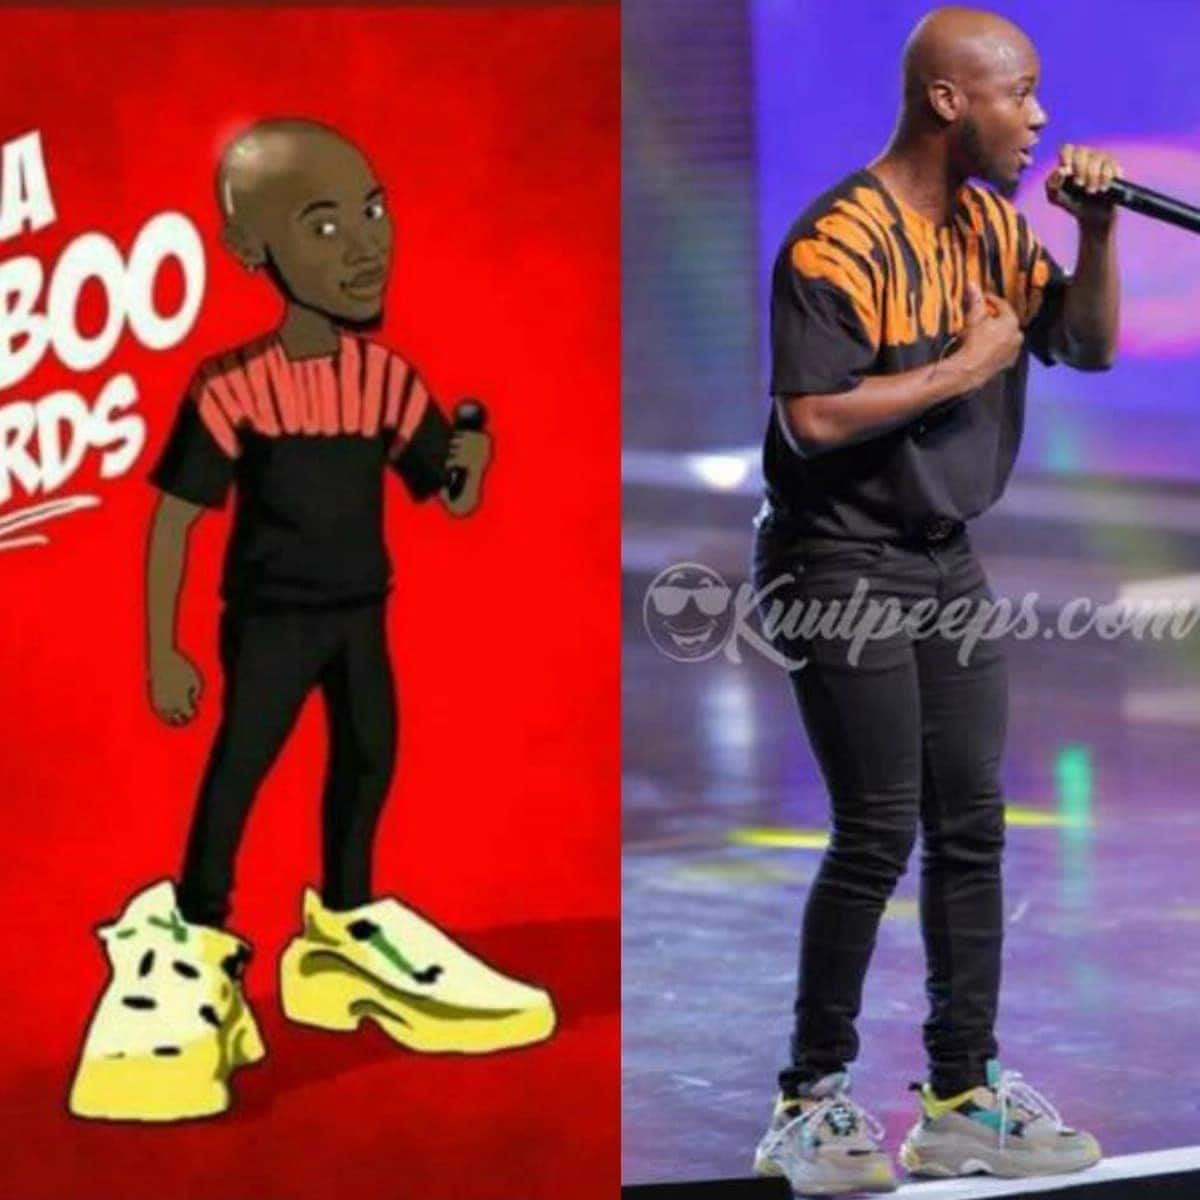 One of the artworks trolling King Promise's shoe at the VGMAs